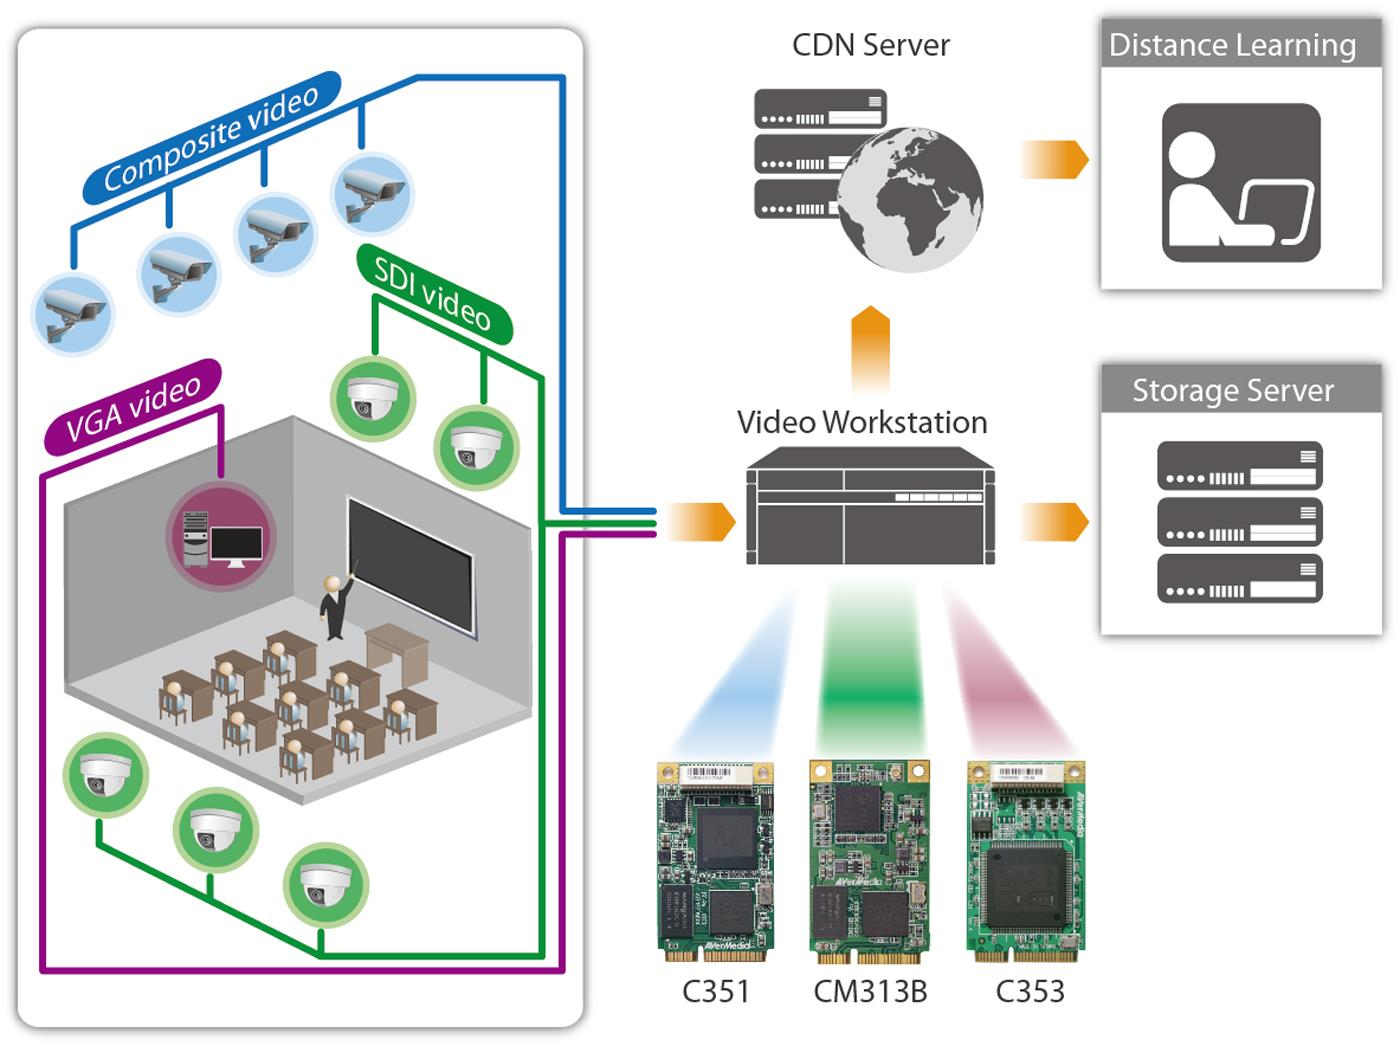 Classroom recording system architecture with capture cards.